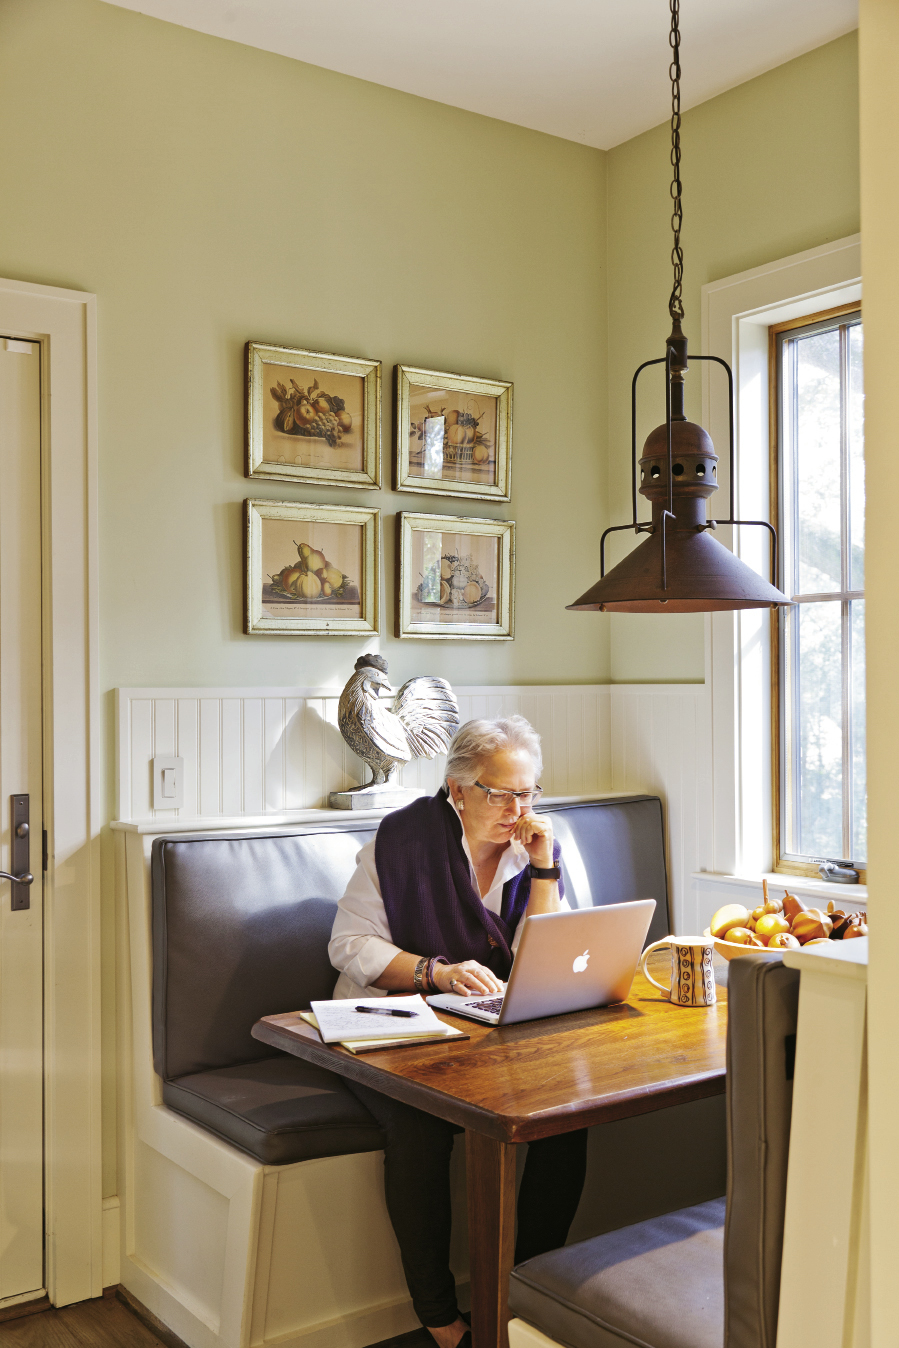 Becky Hollingsworth at work in the breakfast nook.